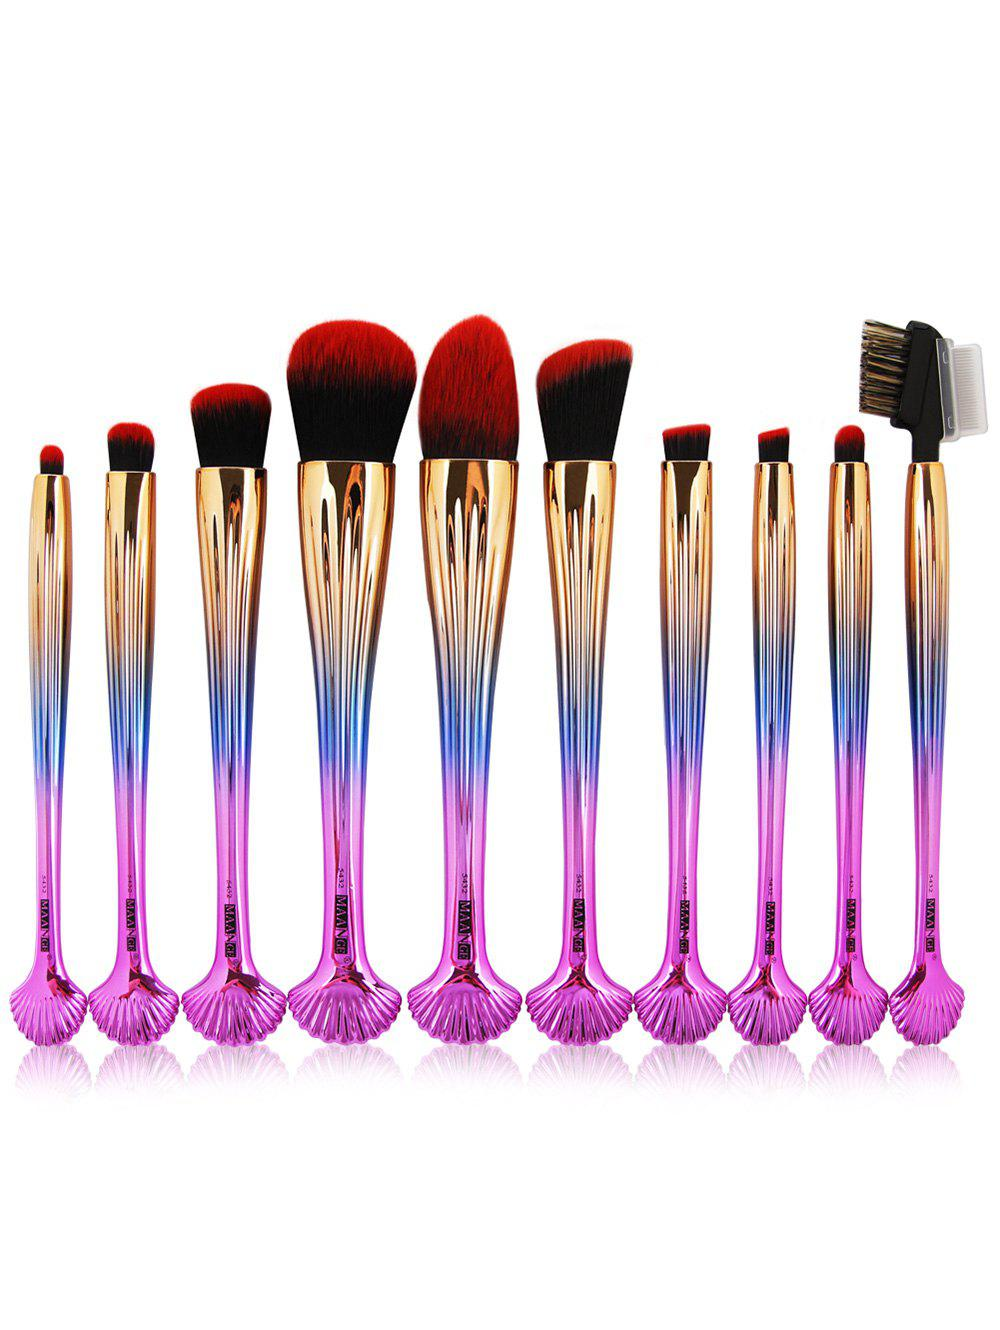 10Pcs Multifunction Gradient Color Shell Design Brushes Set - DARK PINK OMBRE